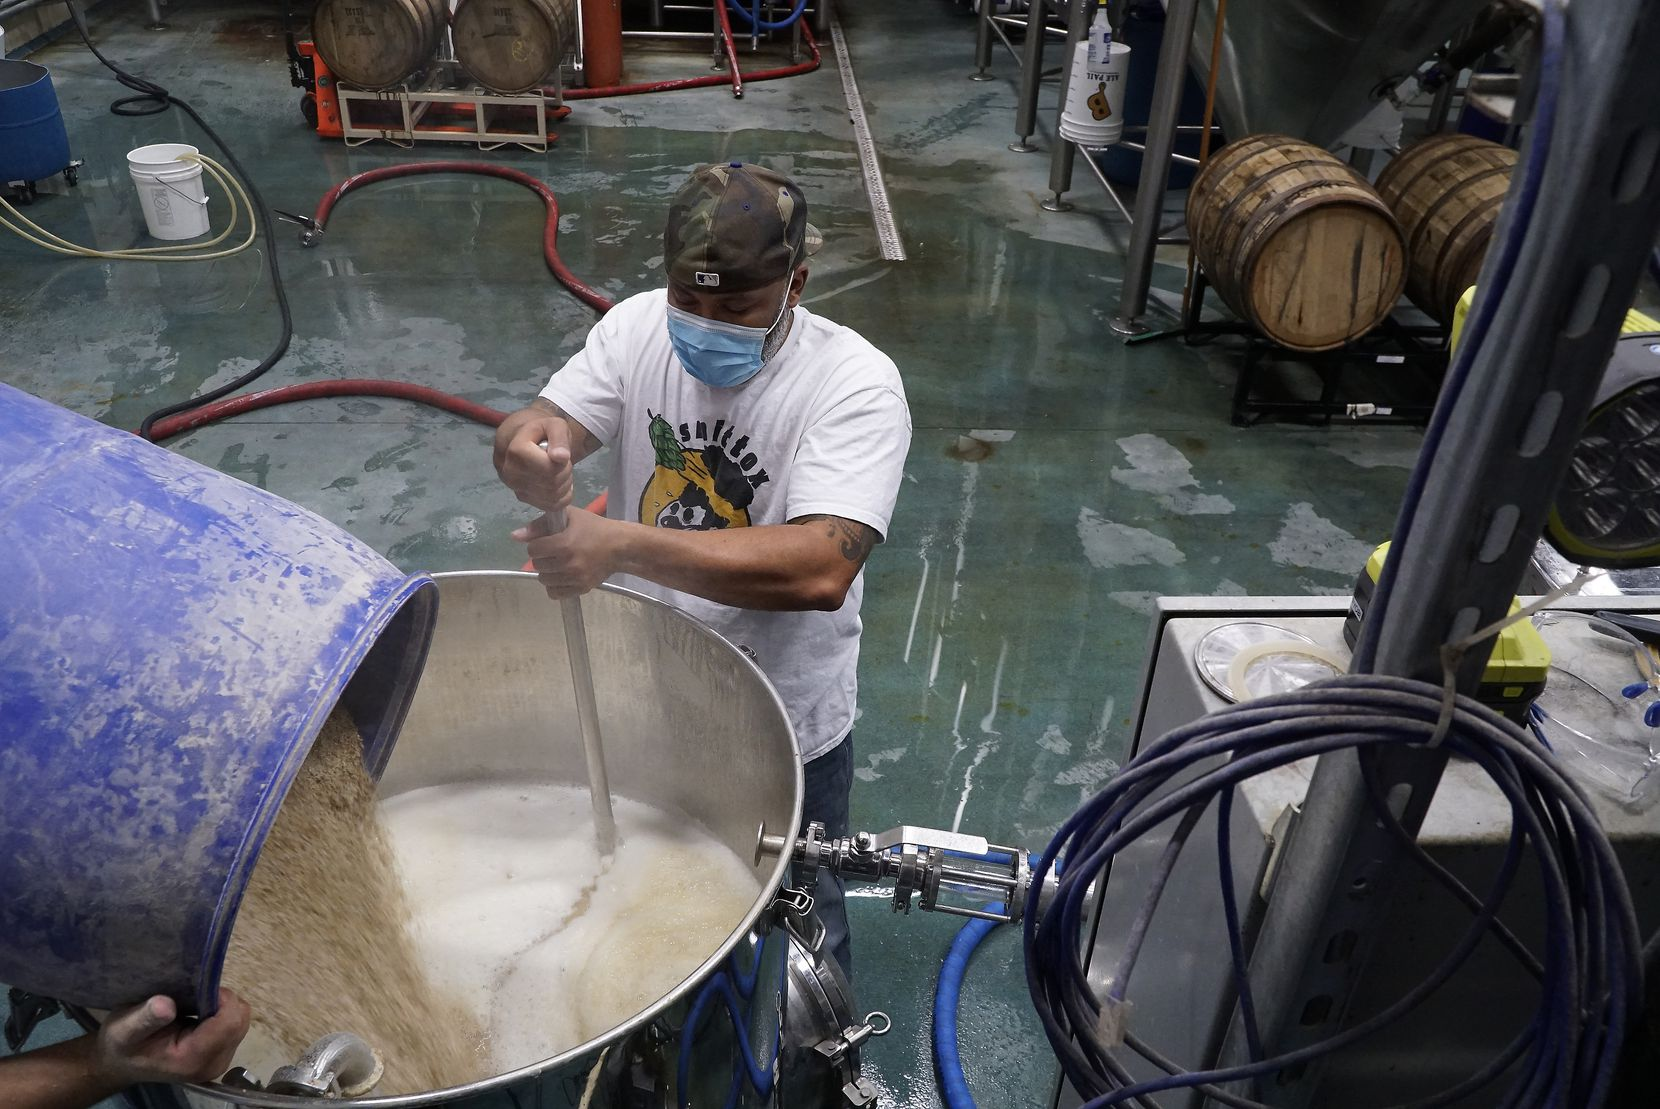 Kuumba Smith mashes the grain for a kettle sour beer at Hop & Sting Brewing Co. in Grapevine.